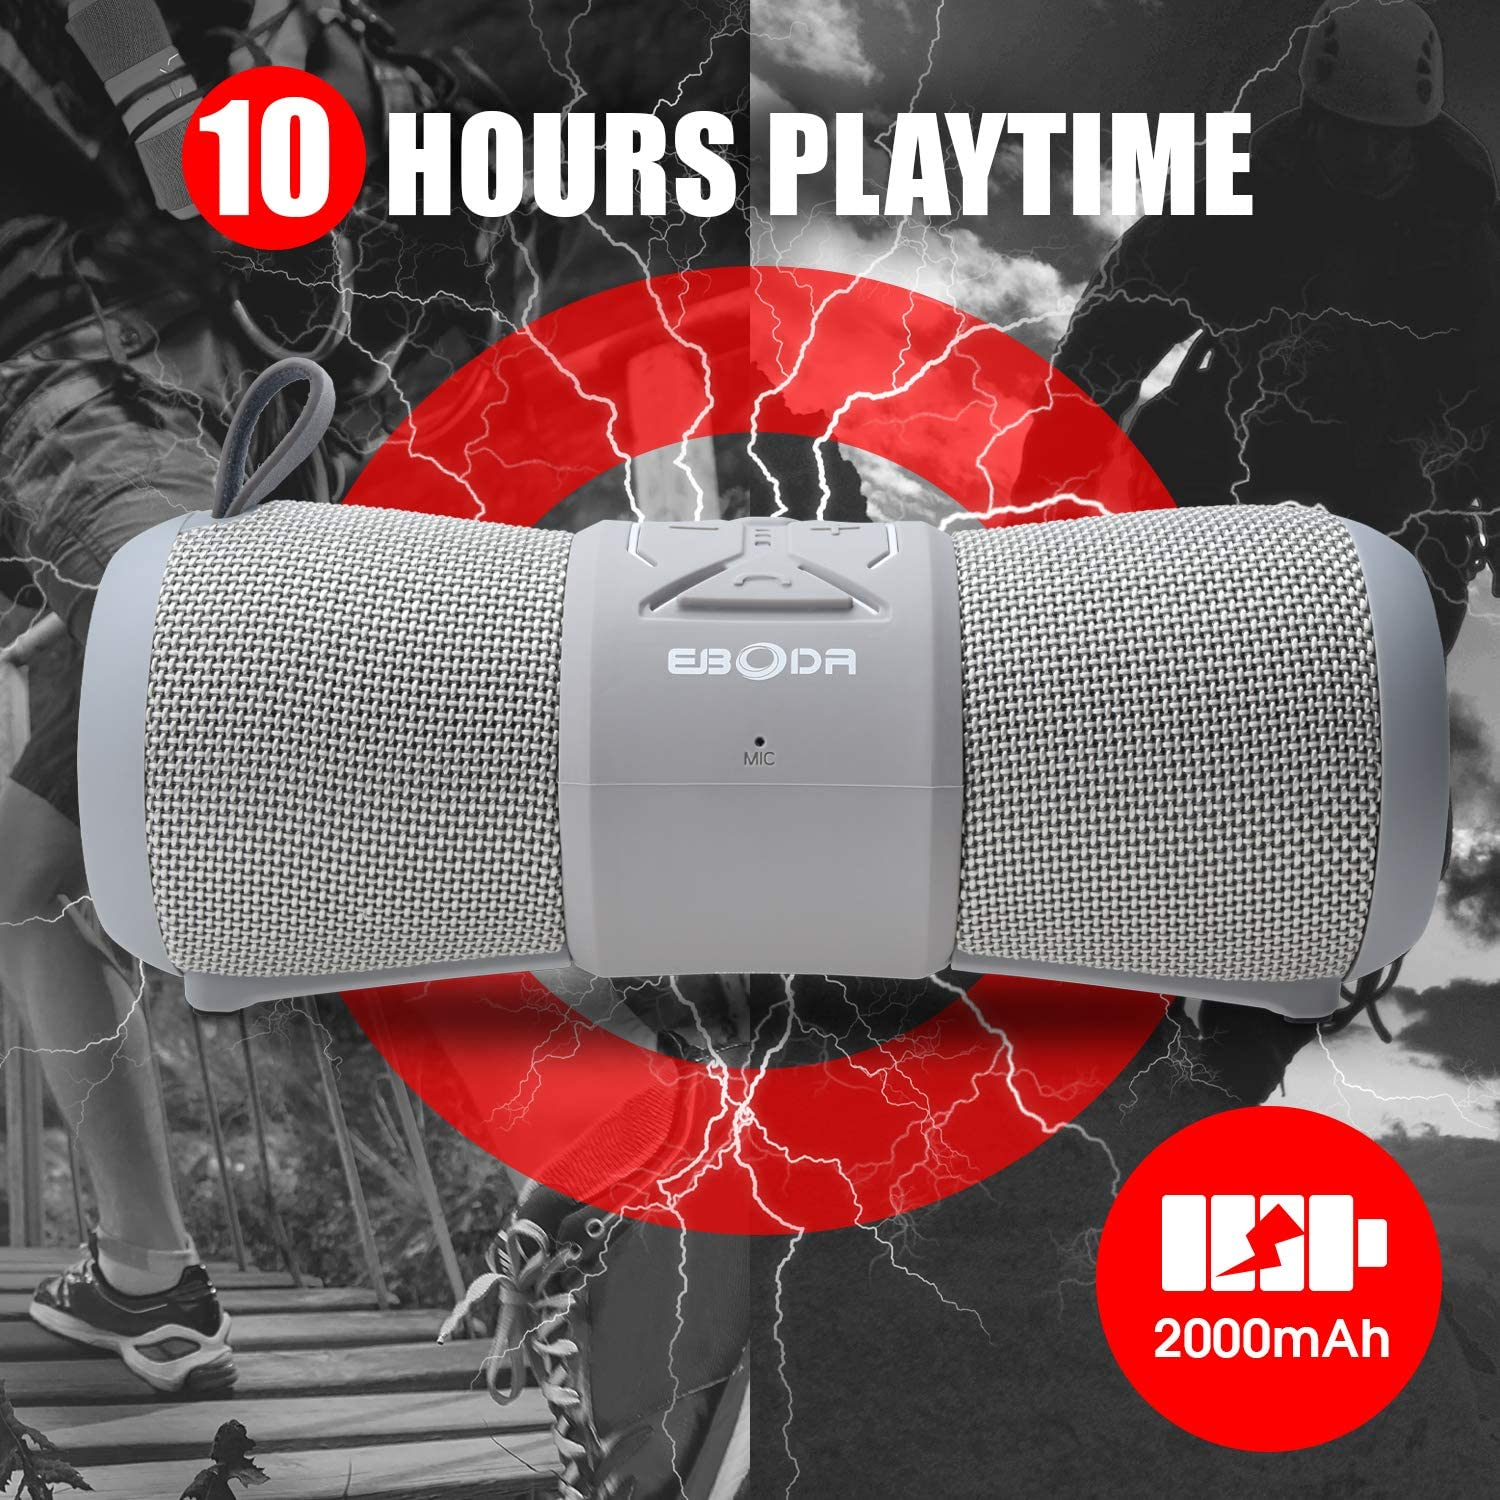 Camping- Gray Hands-Free Beach 8H Playtime for Outdoor Biking Waterproof Bluetooth Speaker,EBODA Shower Speakers Bluetooth IP67 Waterproof Portable,12W Bass Stereo Sound Hiking Floating Mic